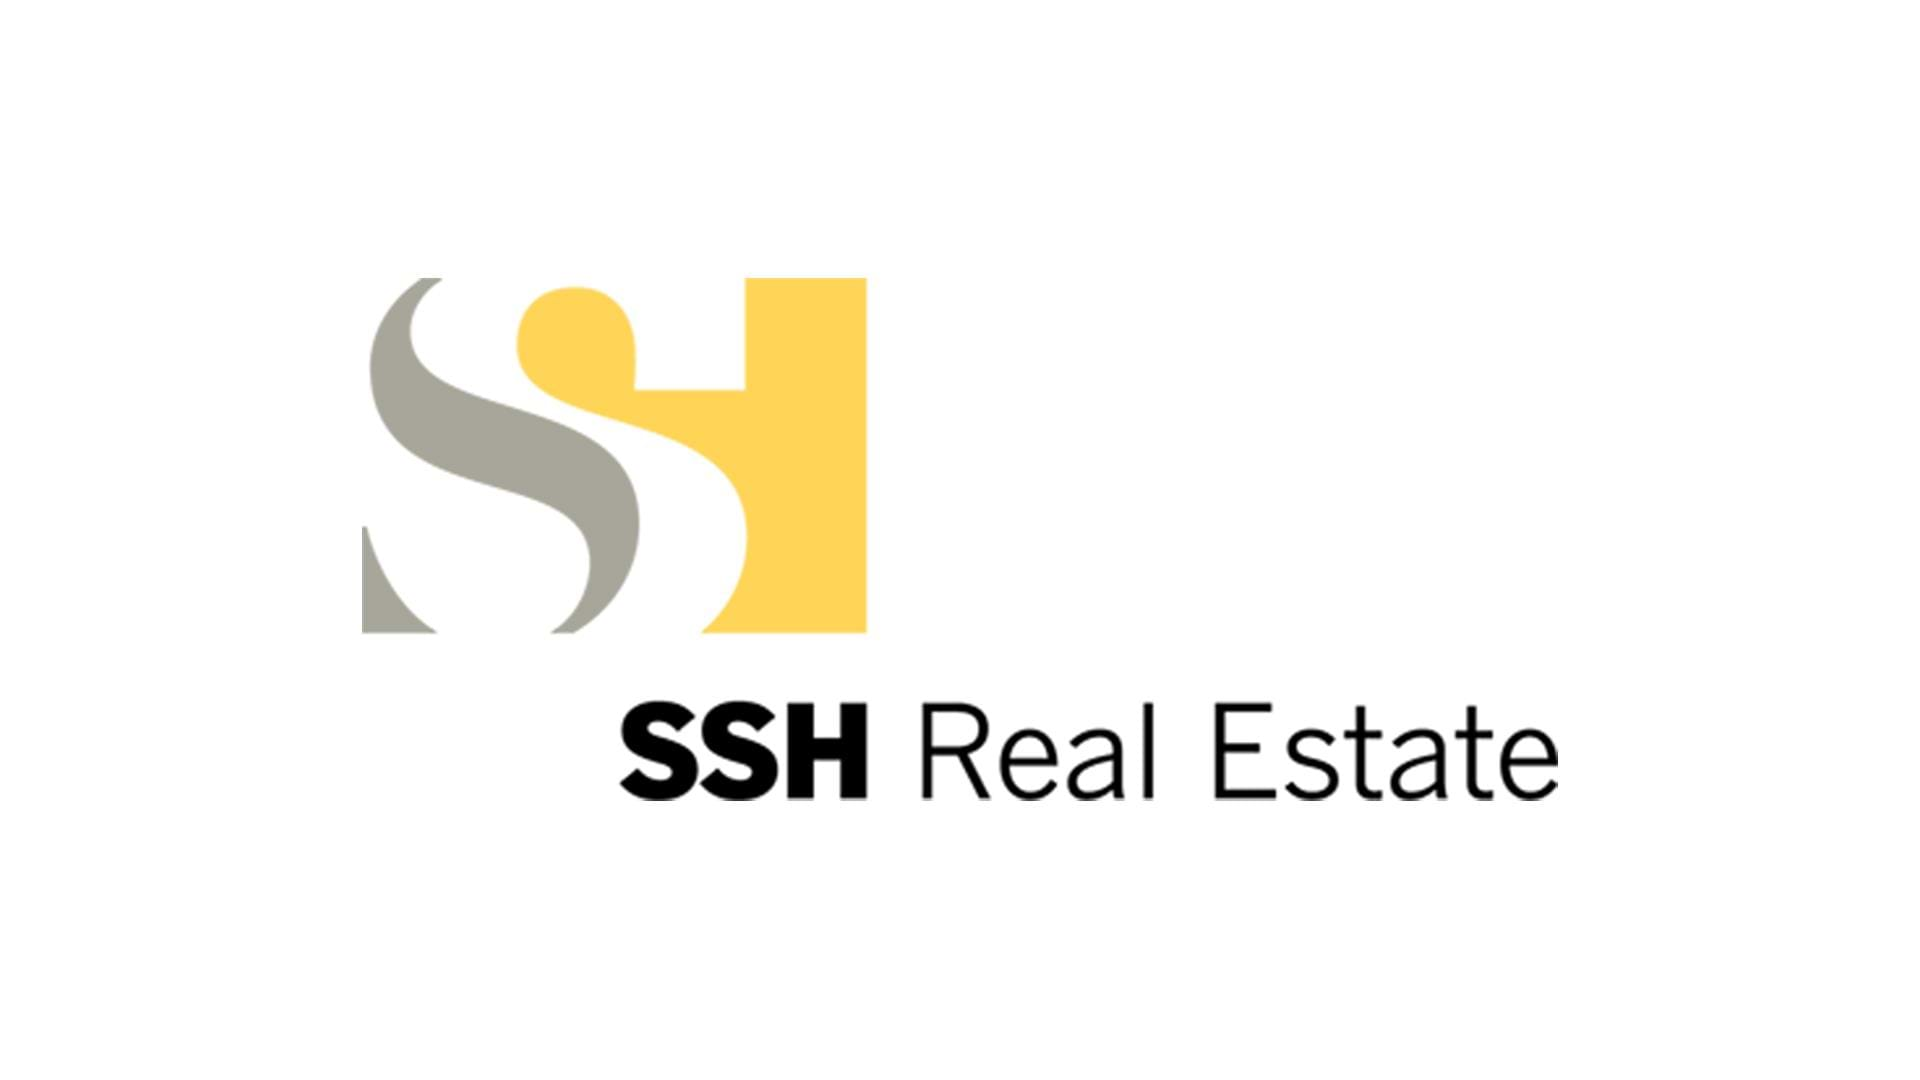 SSH Real Estate